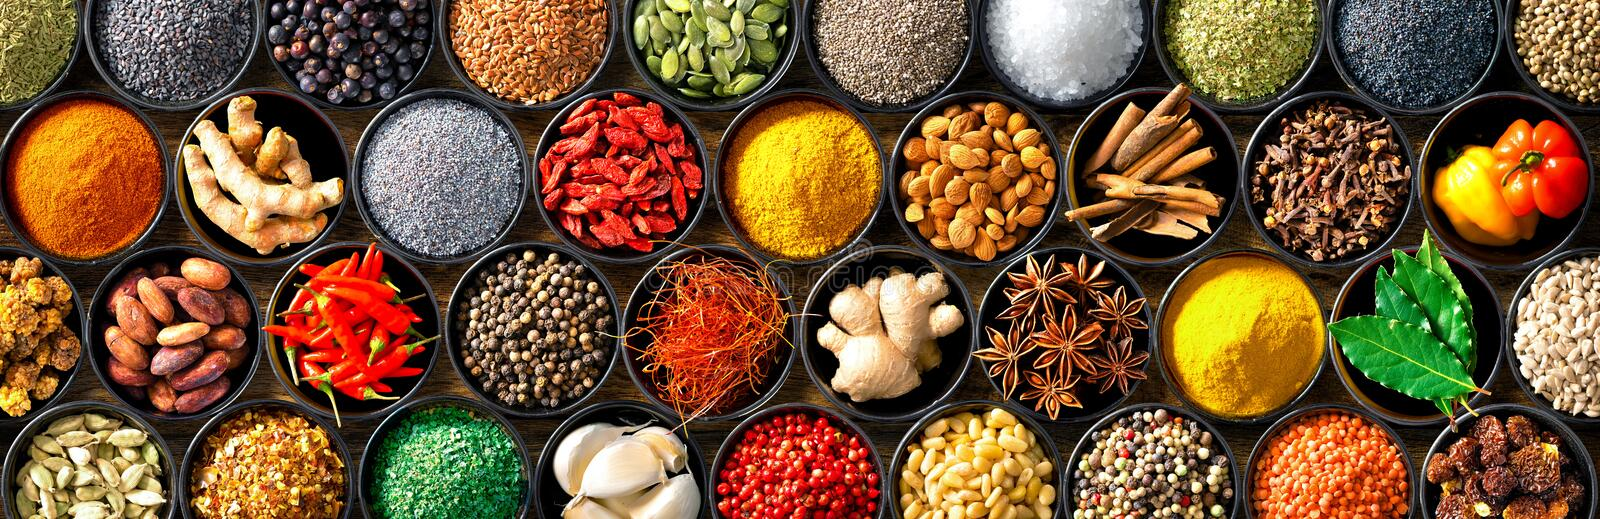 Colourful background from various herbs and spices for cooking in bowls stock image